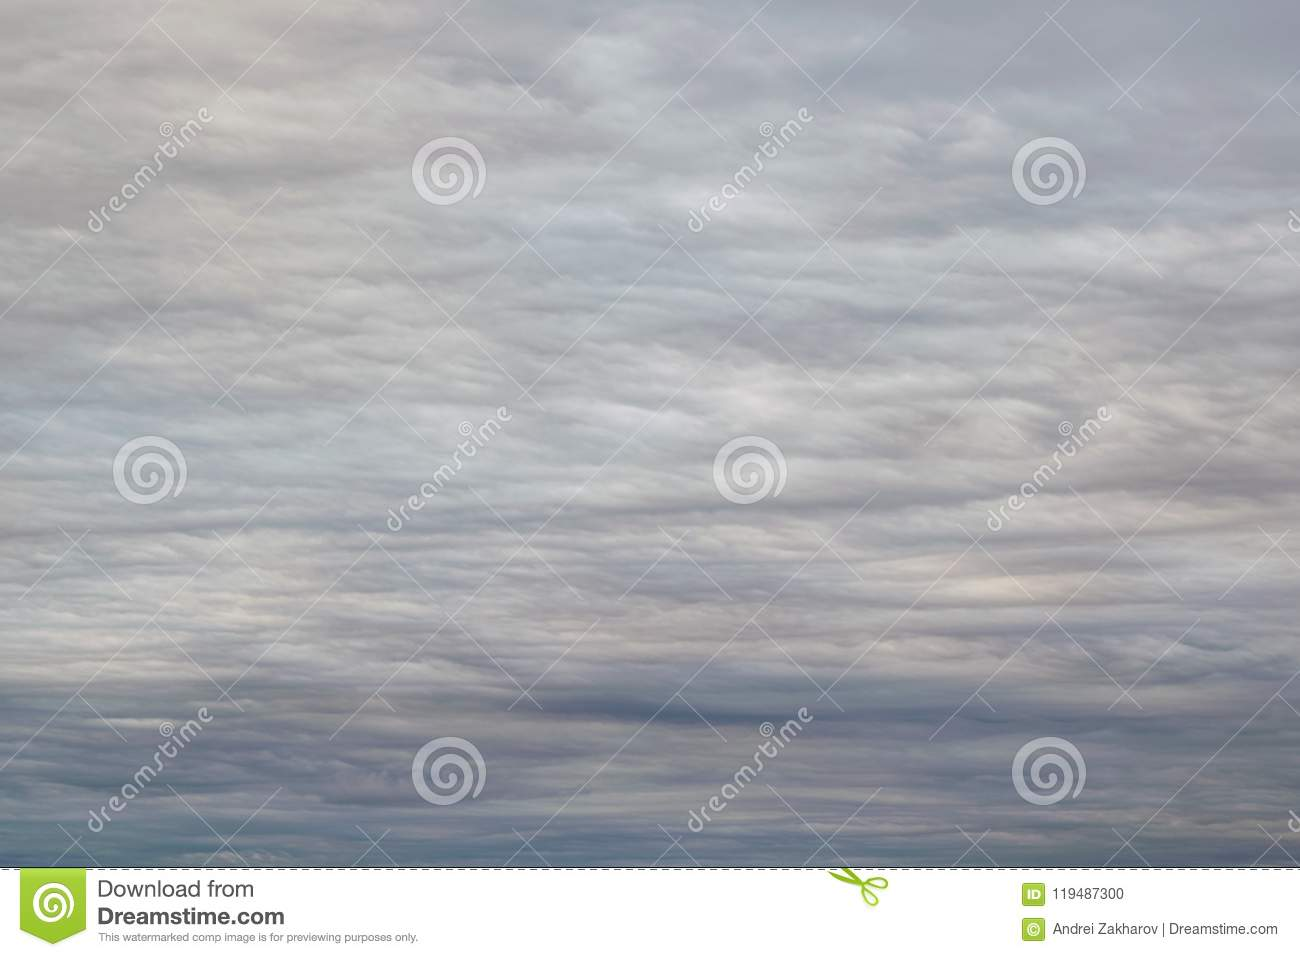 Dark, grey clouds covered the sky. Clouds in the form of lines and wavy layers.